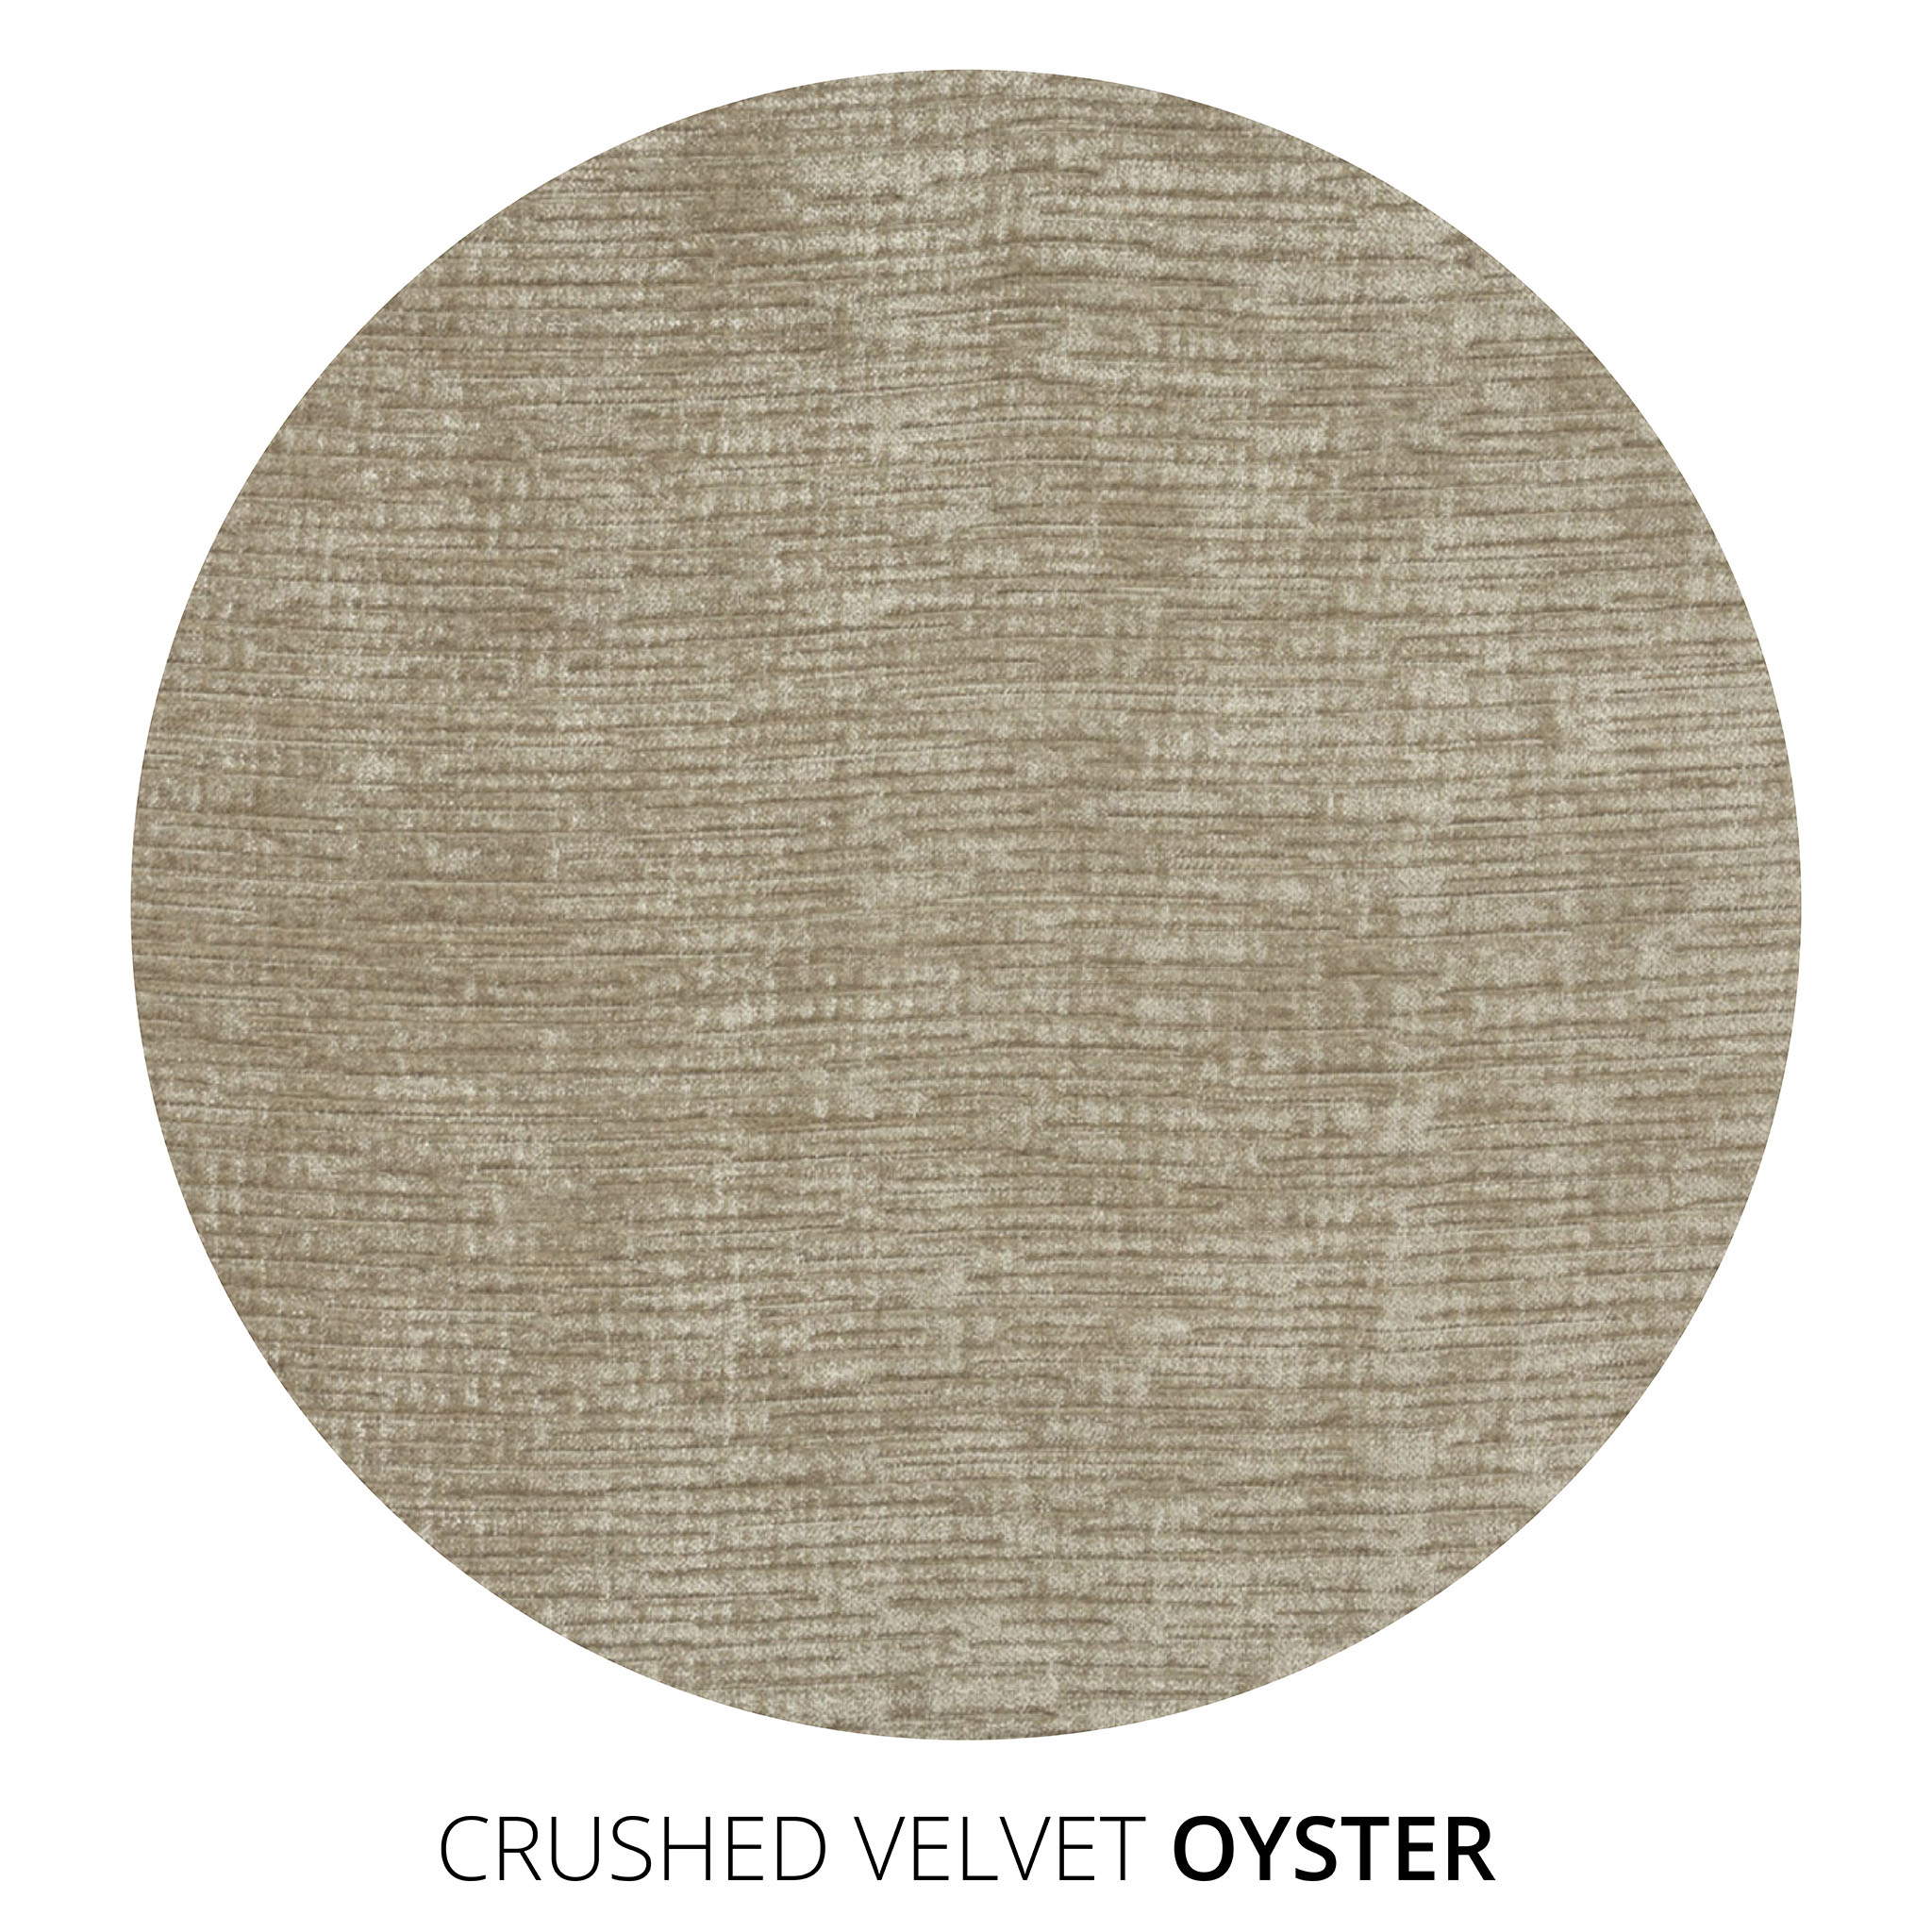 Oyster Crushed Velvet Swatch